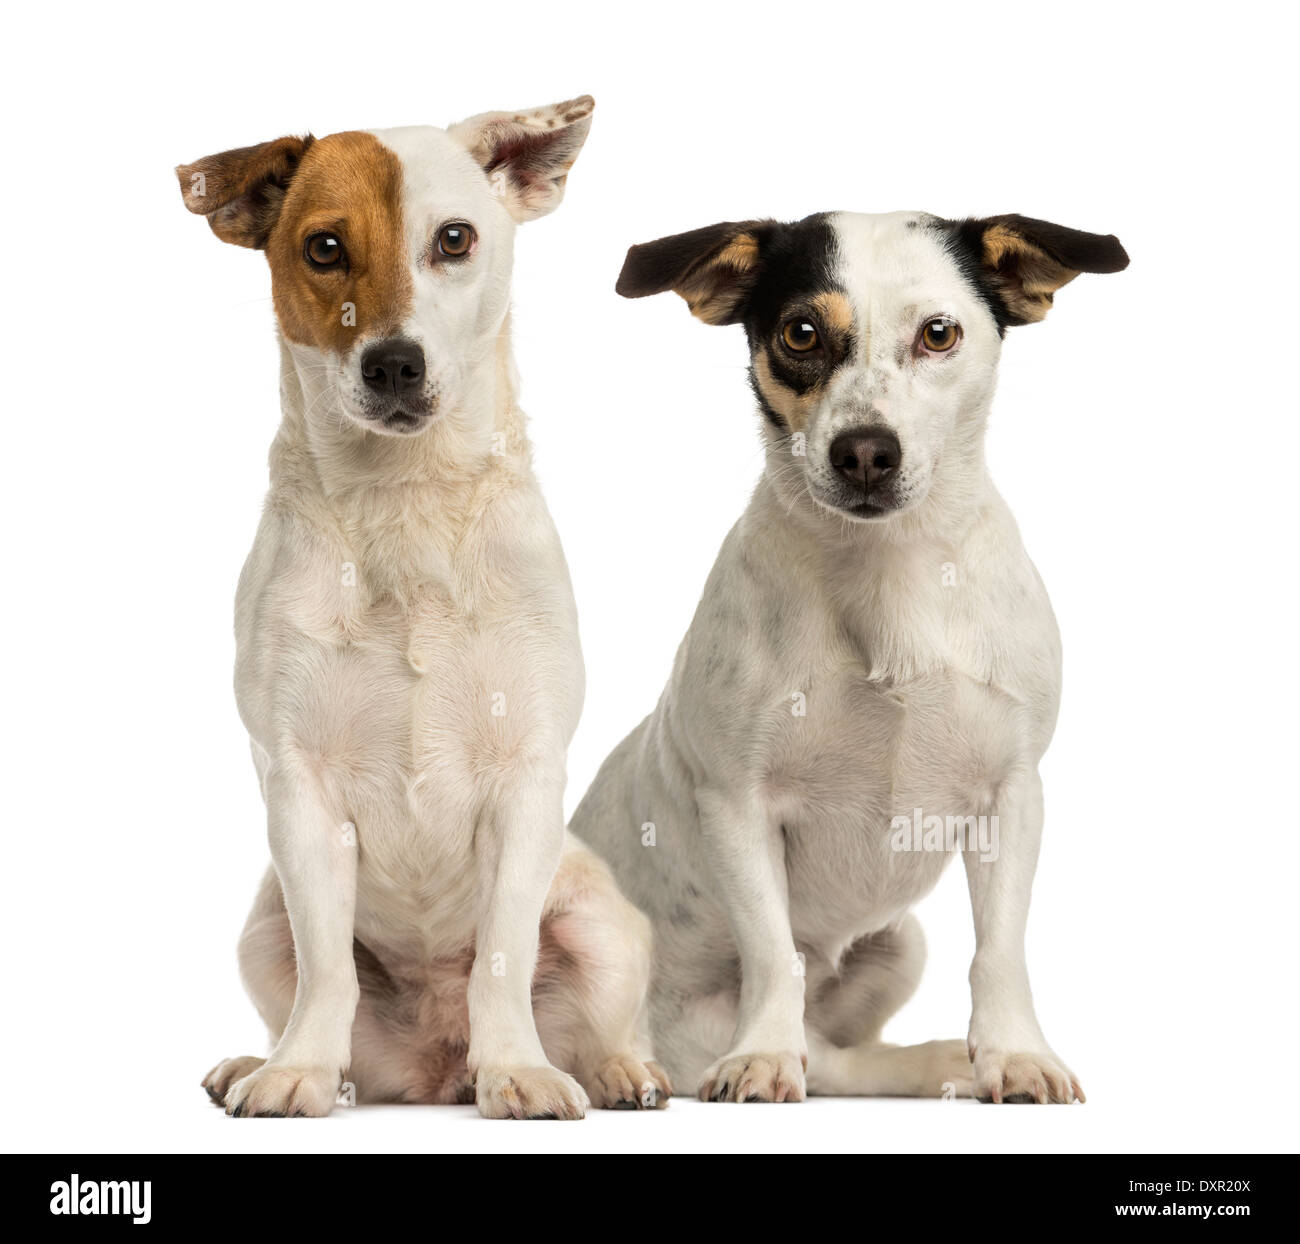 Two Jack russell terriers sitting and looking at the camera against white background - Stock Image